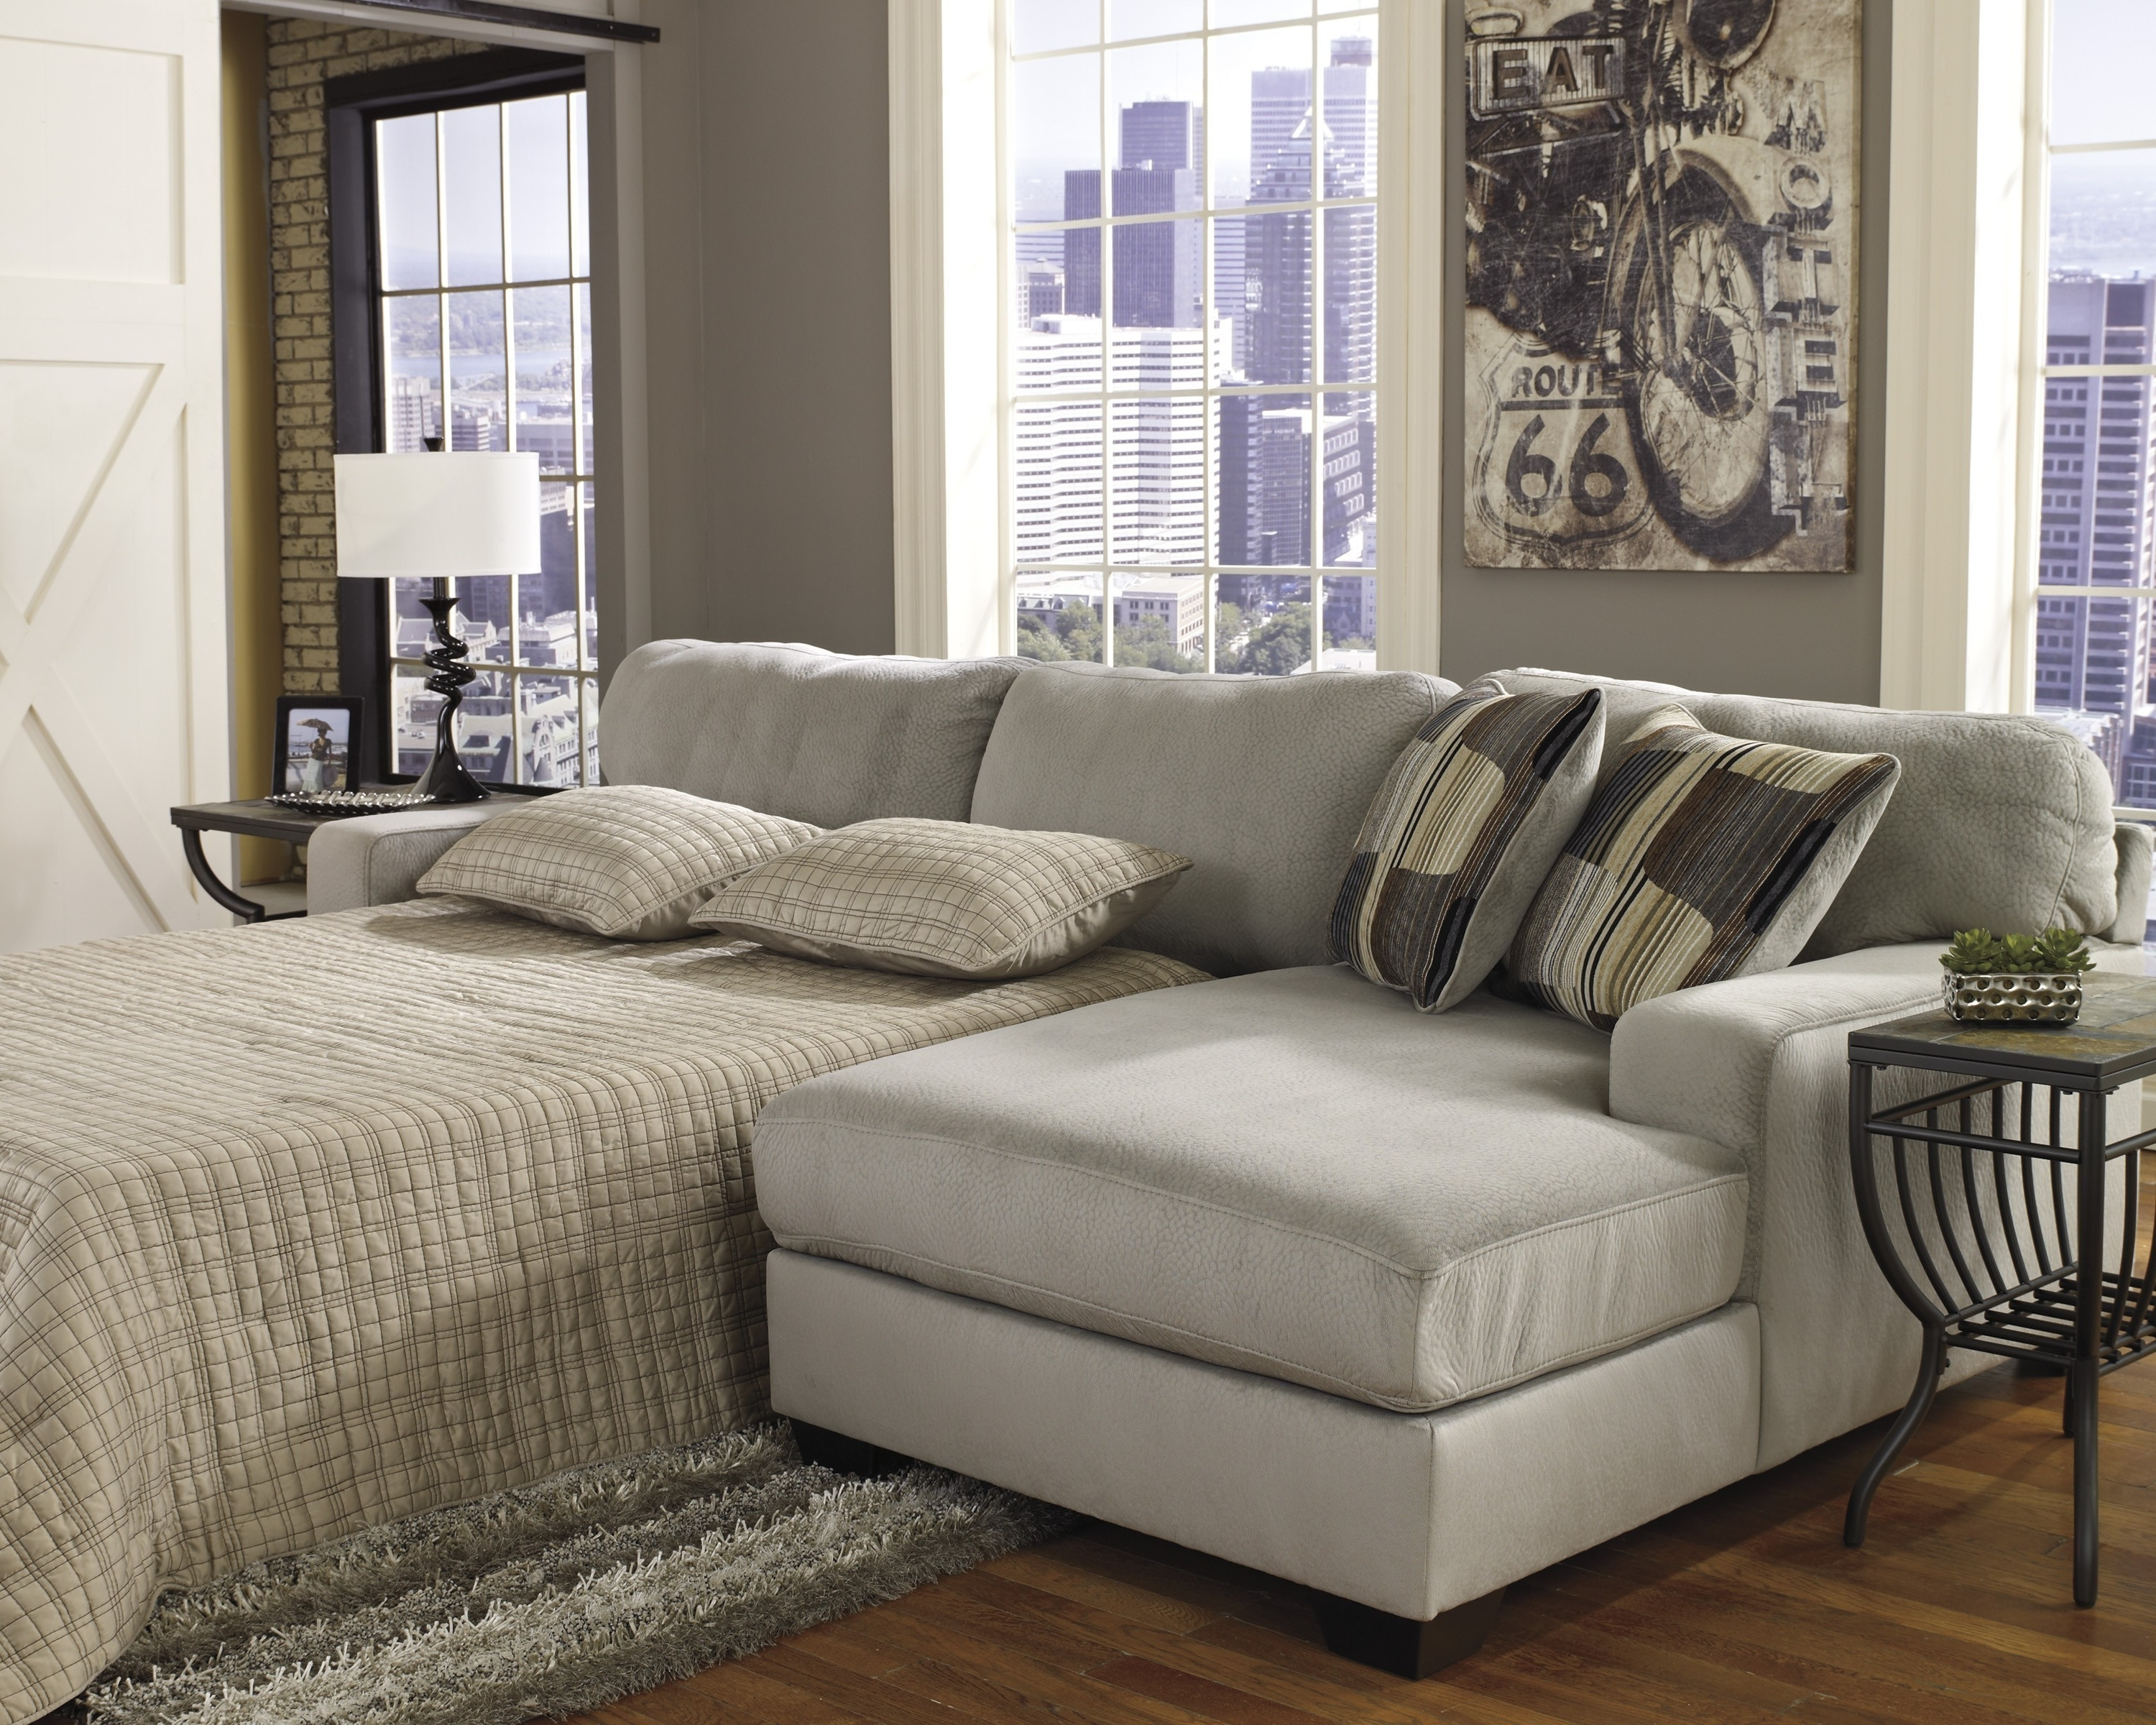 Popular Interesting Sleeper Sectional Sofa With Chaise Simple Home Design With Regard To Leather Sectional Sleeper Sofas With Chaise (View 15 of 15)